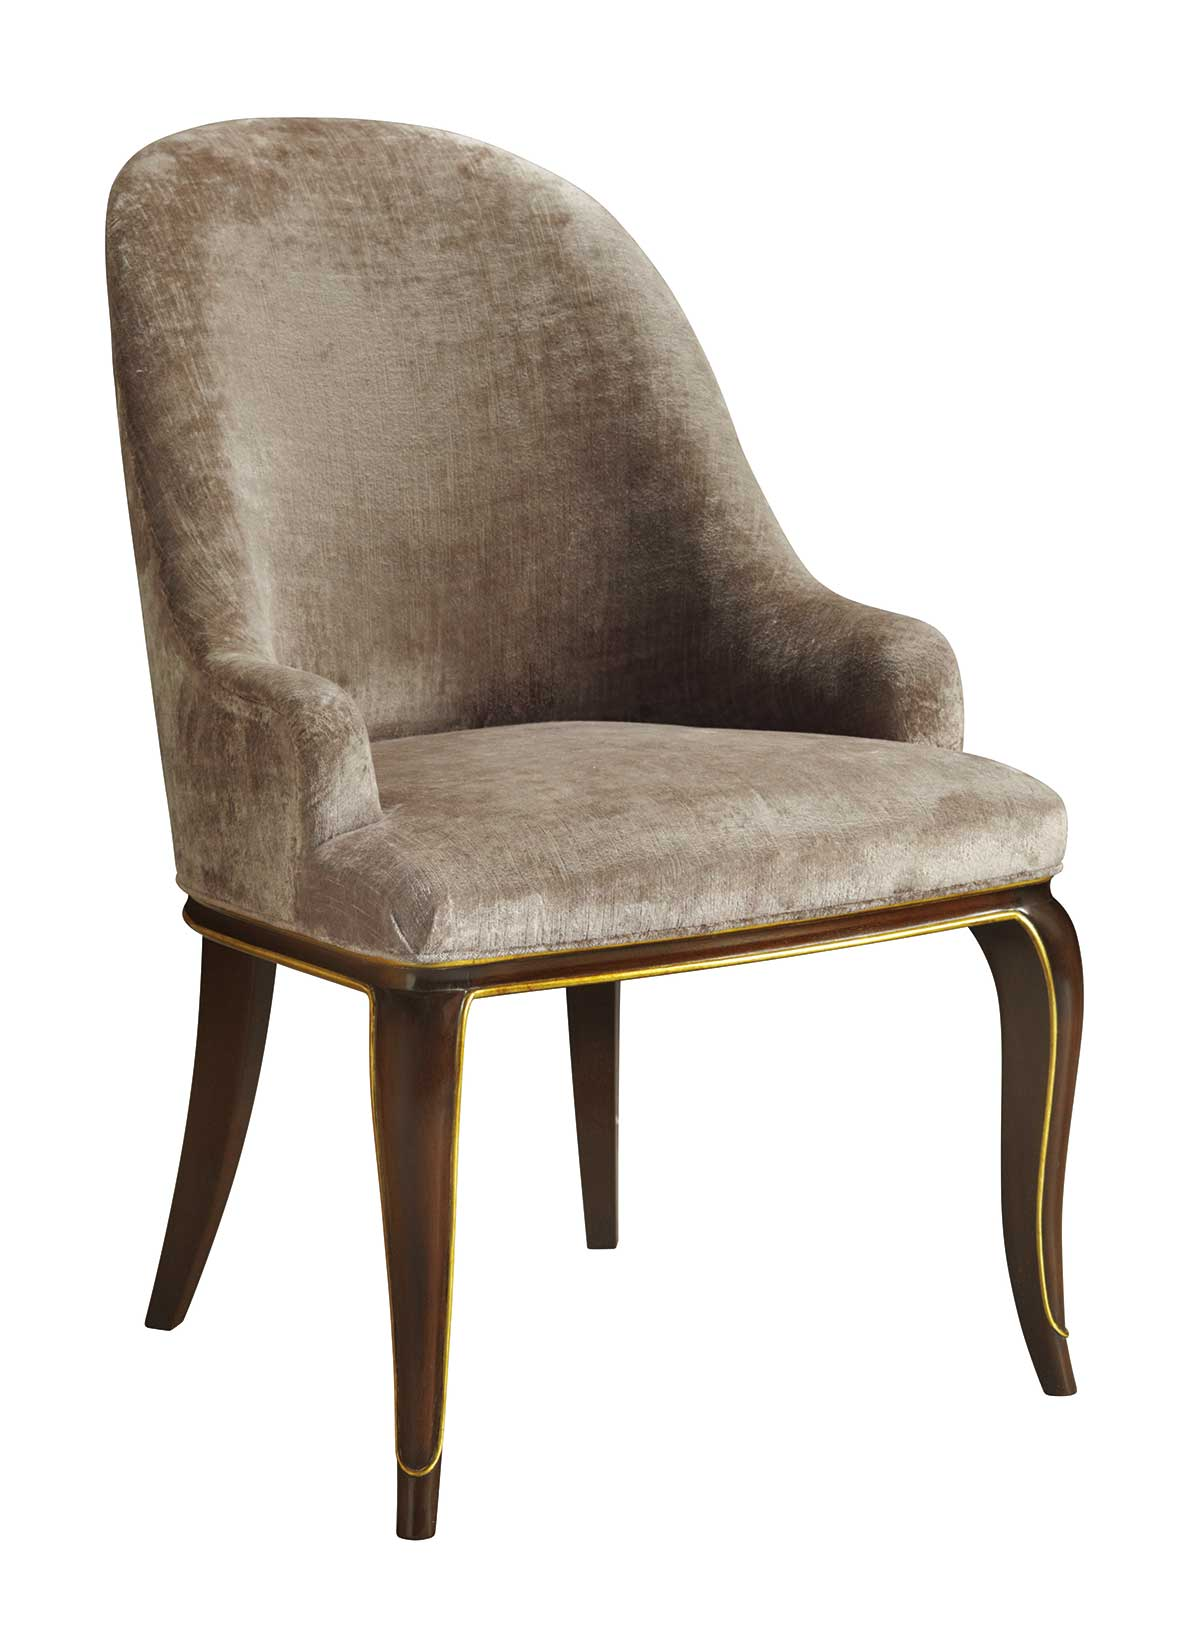 Barbara-Barry-dining-chair